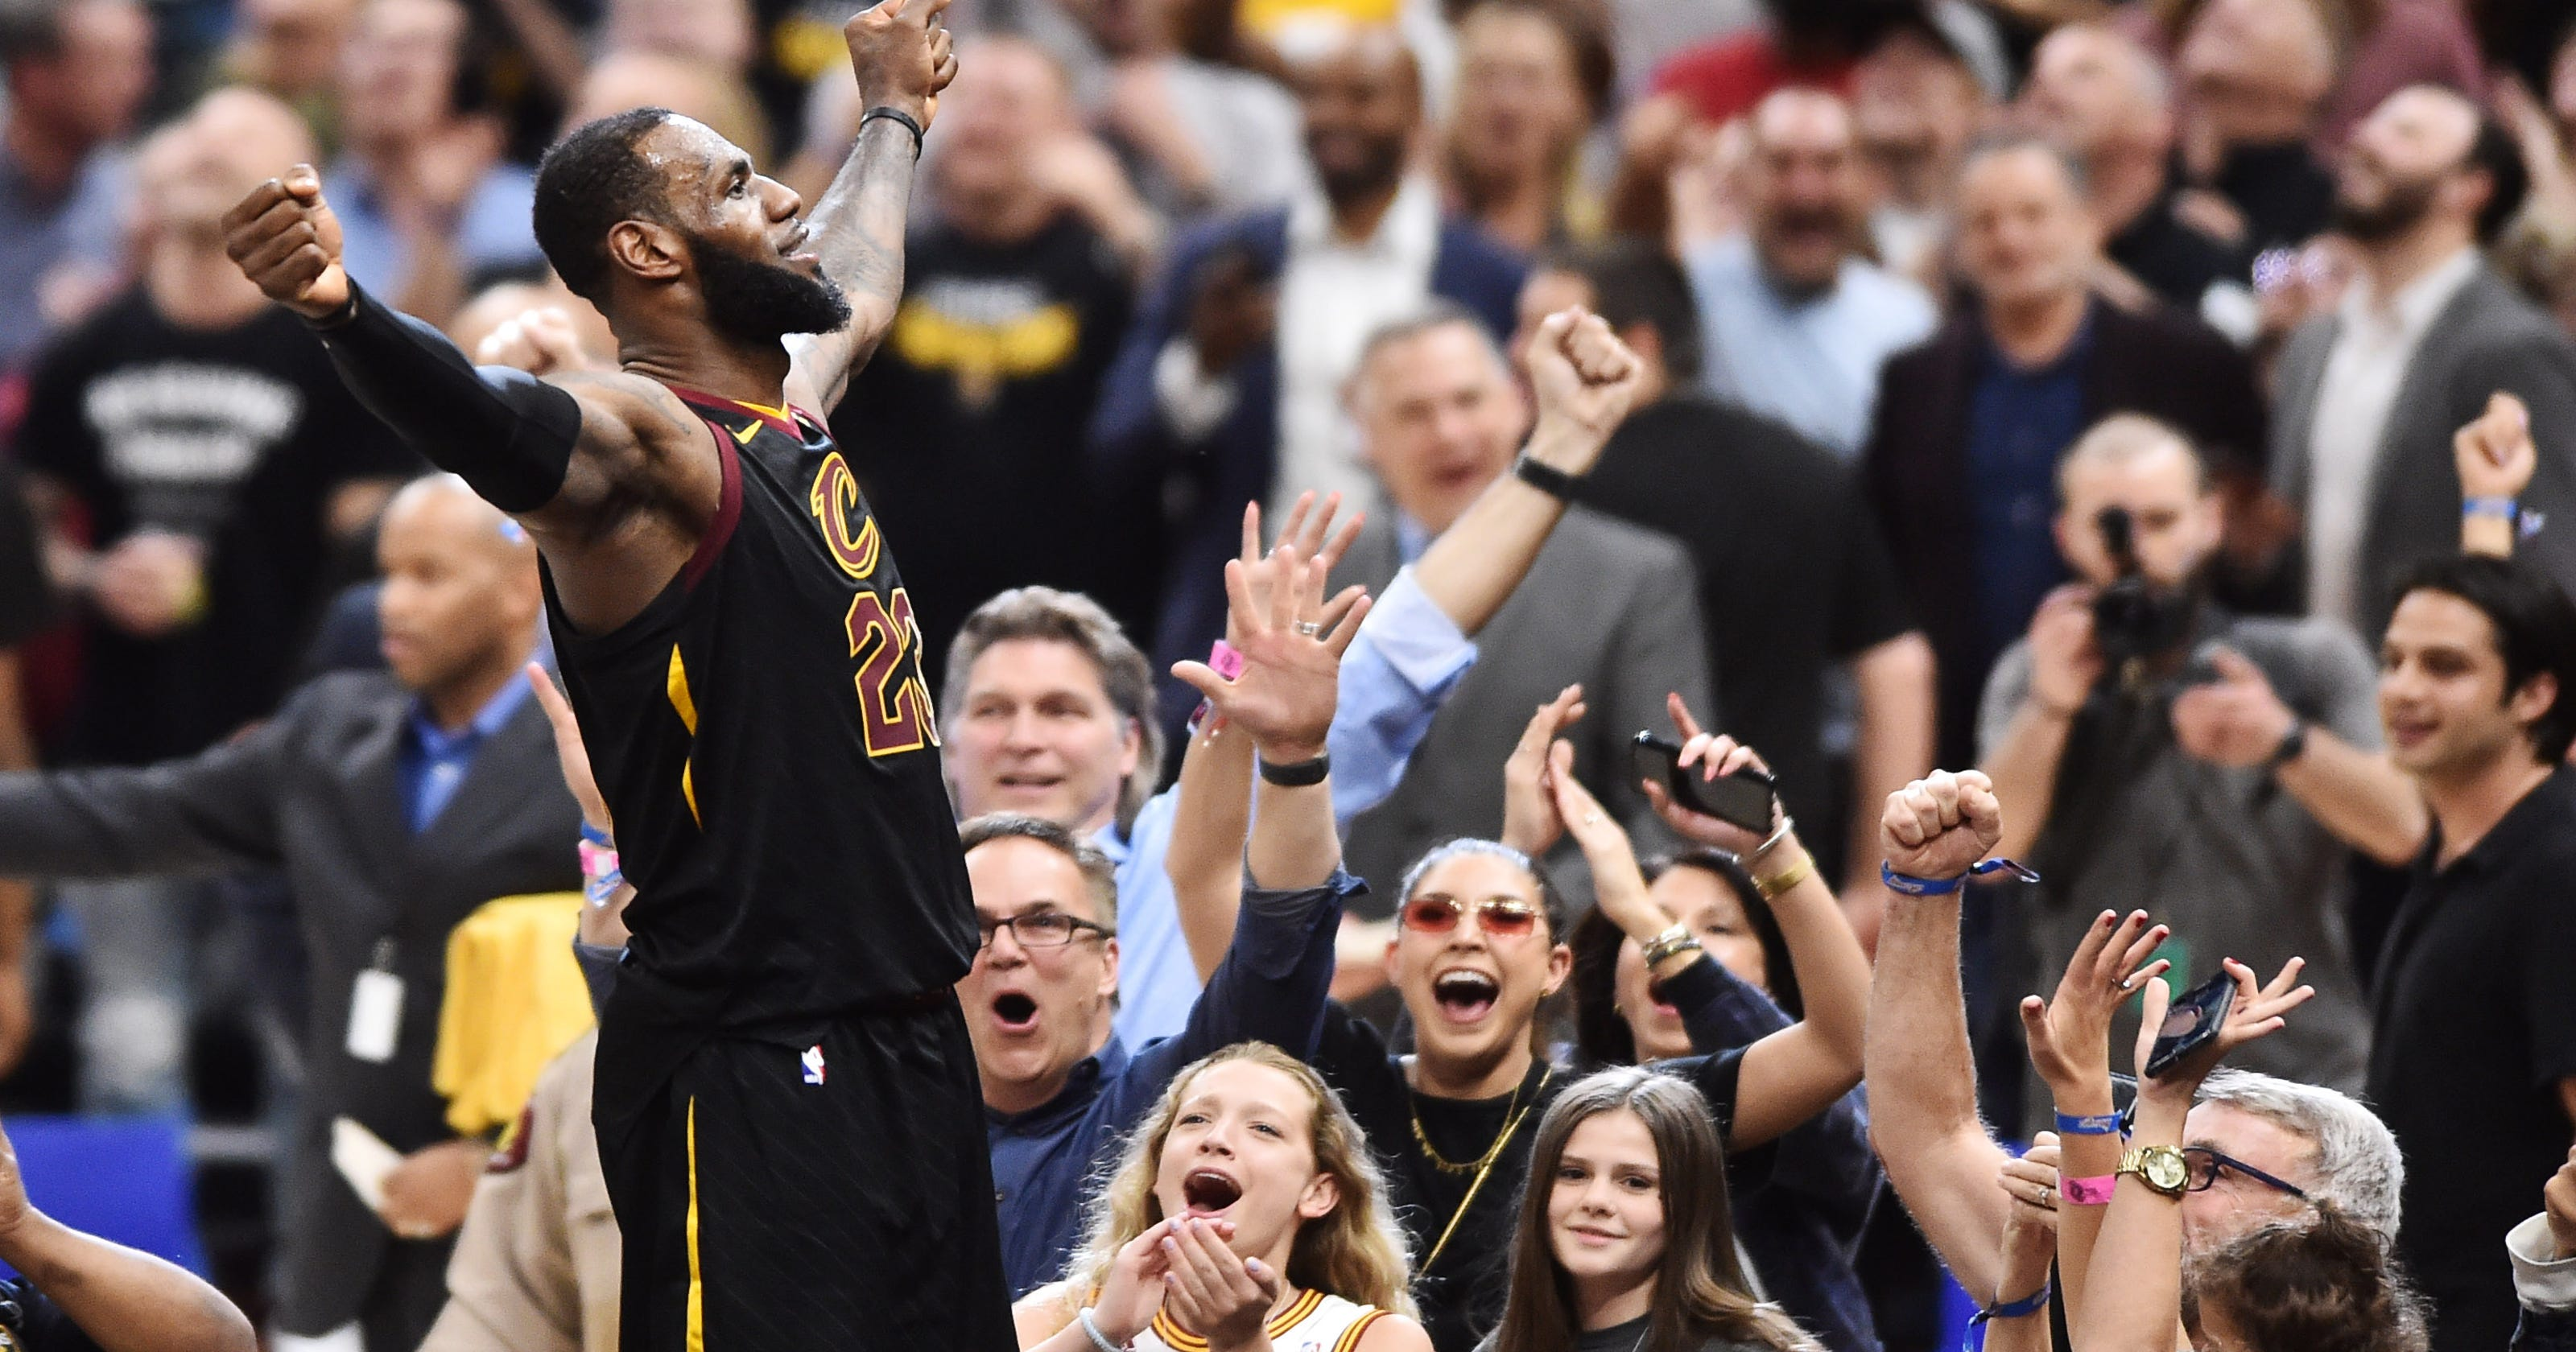 a31ffb392481 LeBron James is a Cleveland hero even with Lakers free agent decision